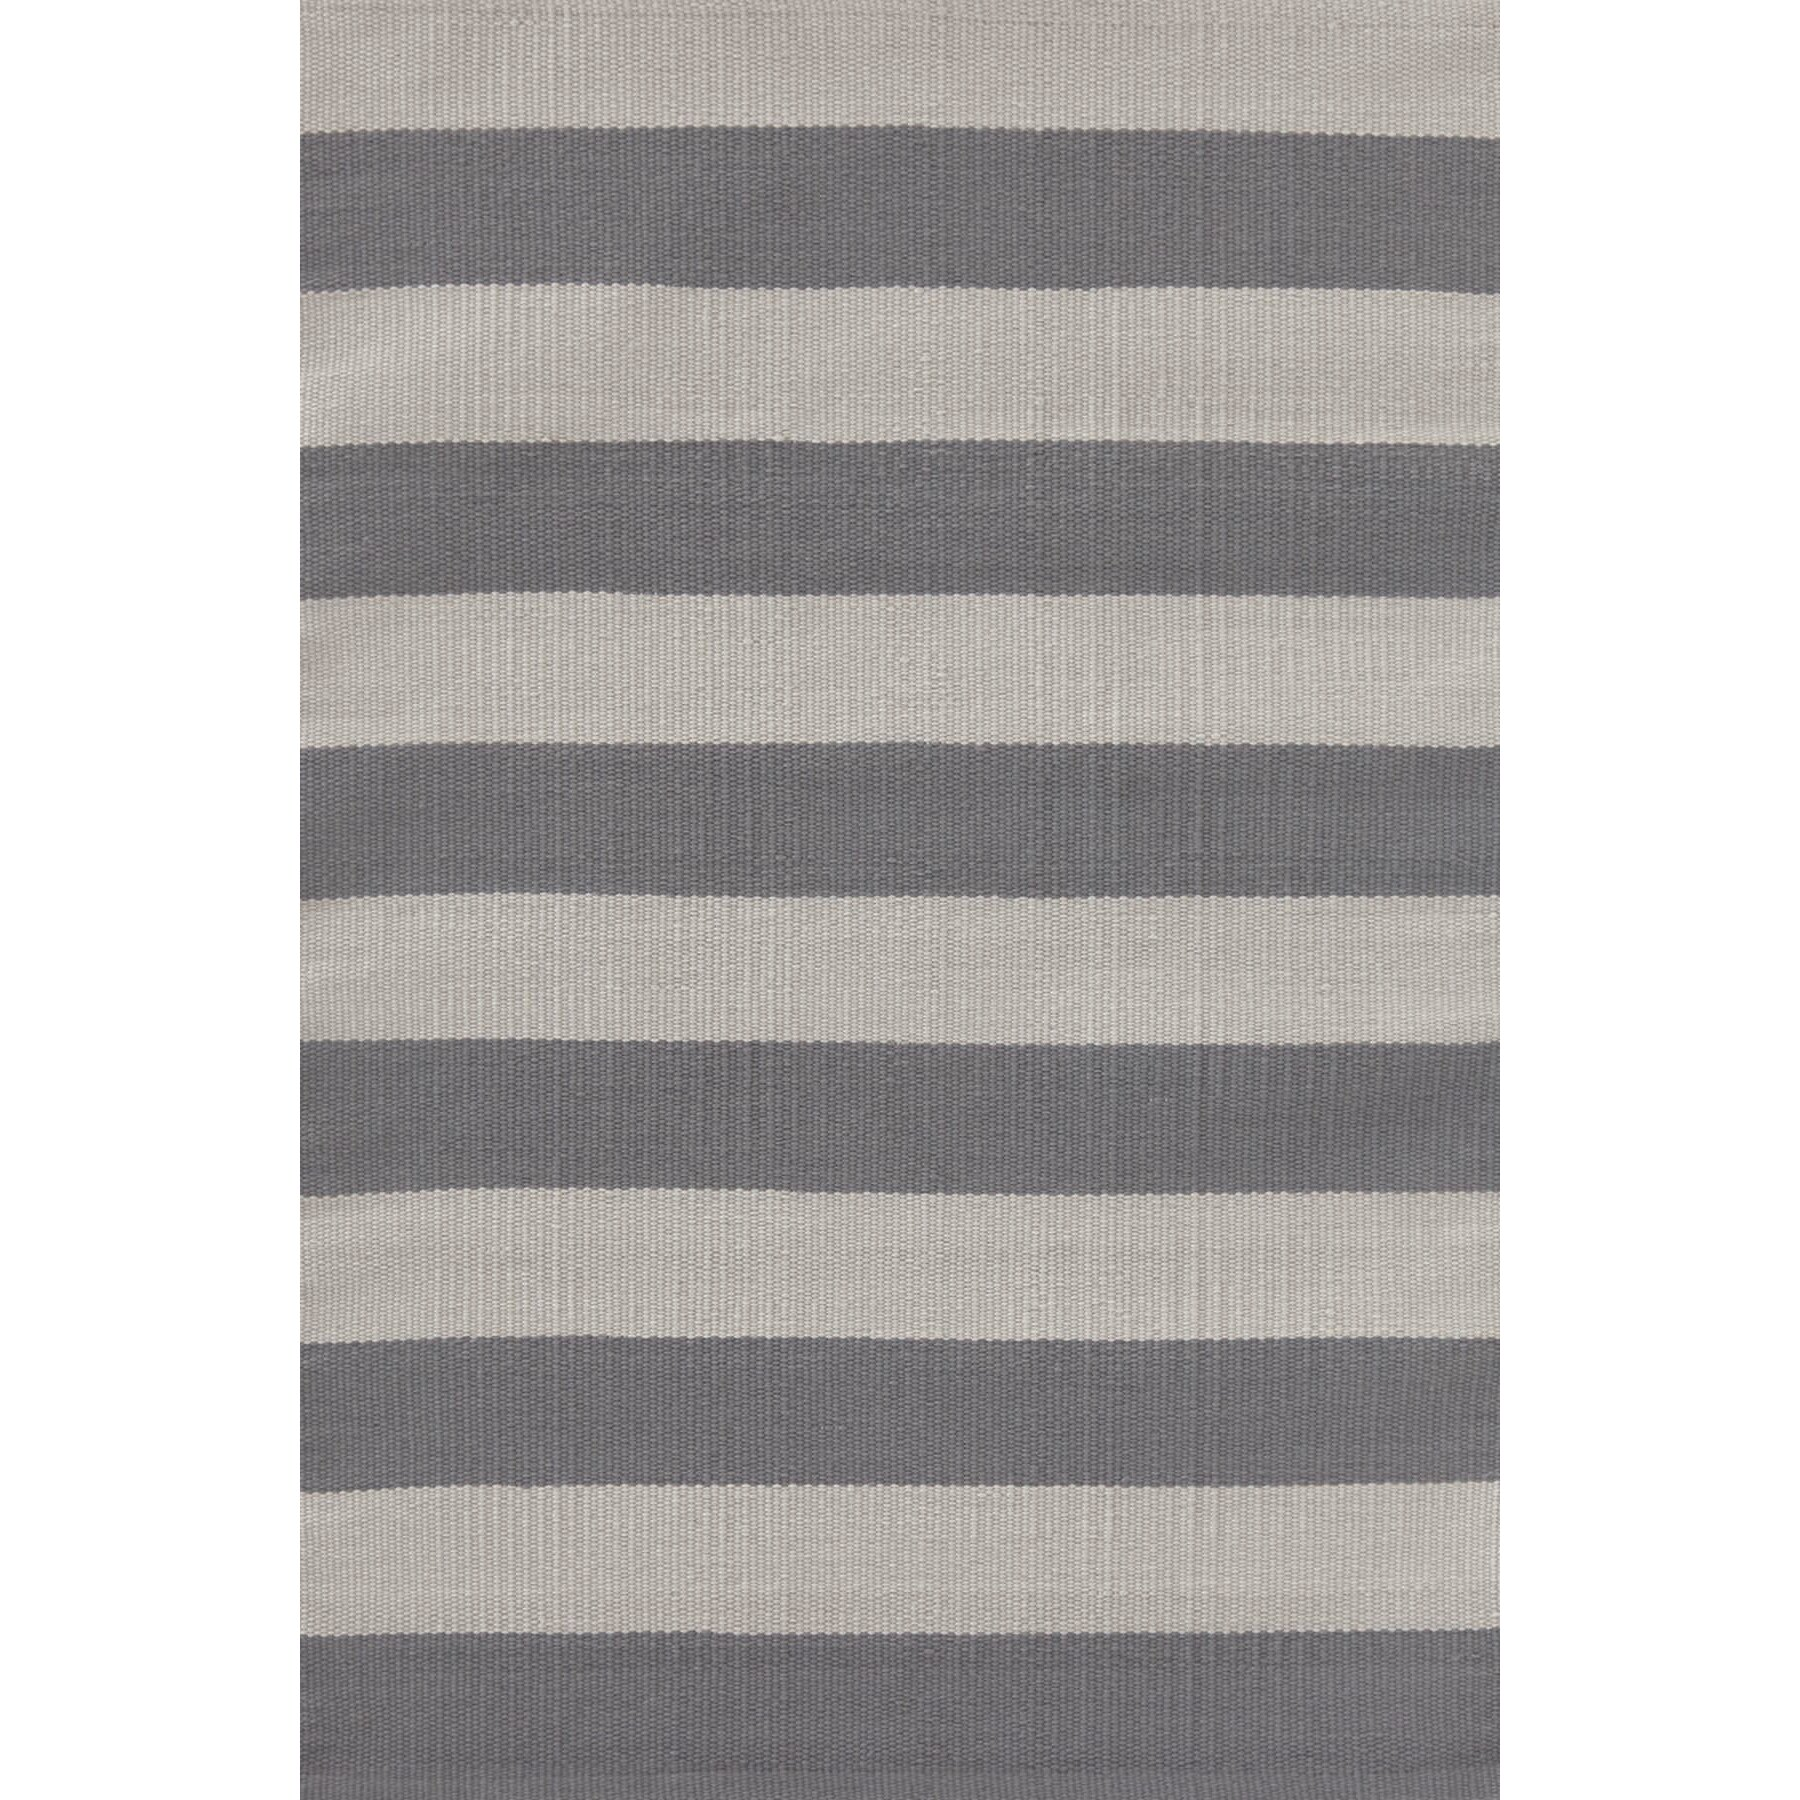 Dash and albert rugs catamaran hand woven gray indoor for Dash and albert indoor outdoor rugs